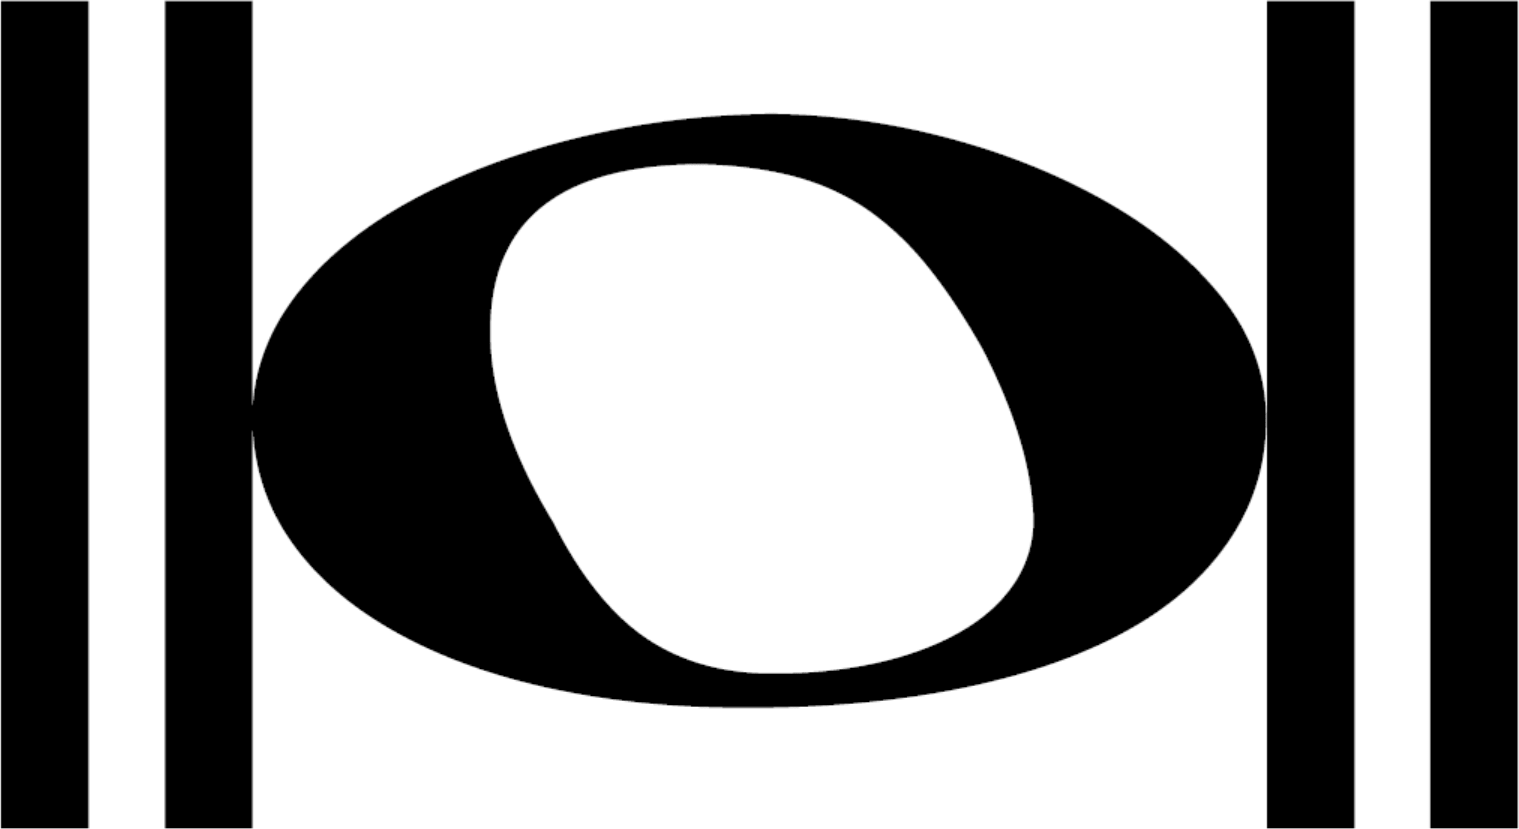 An HD whole note, also called a semibreve; a musical symbol and musical note value.